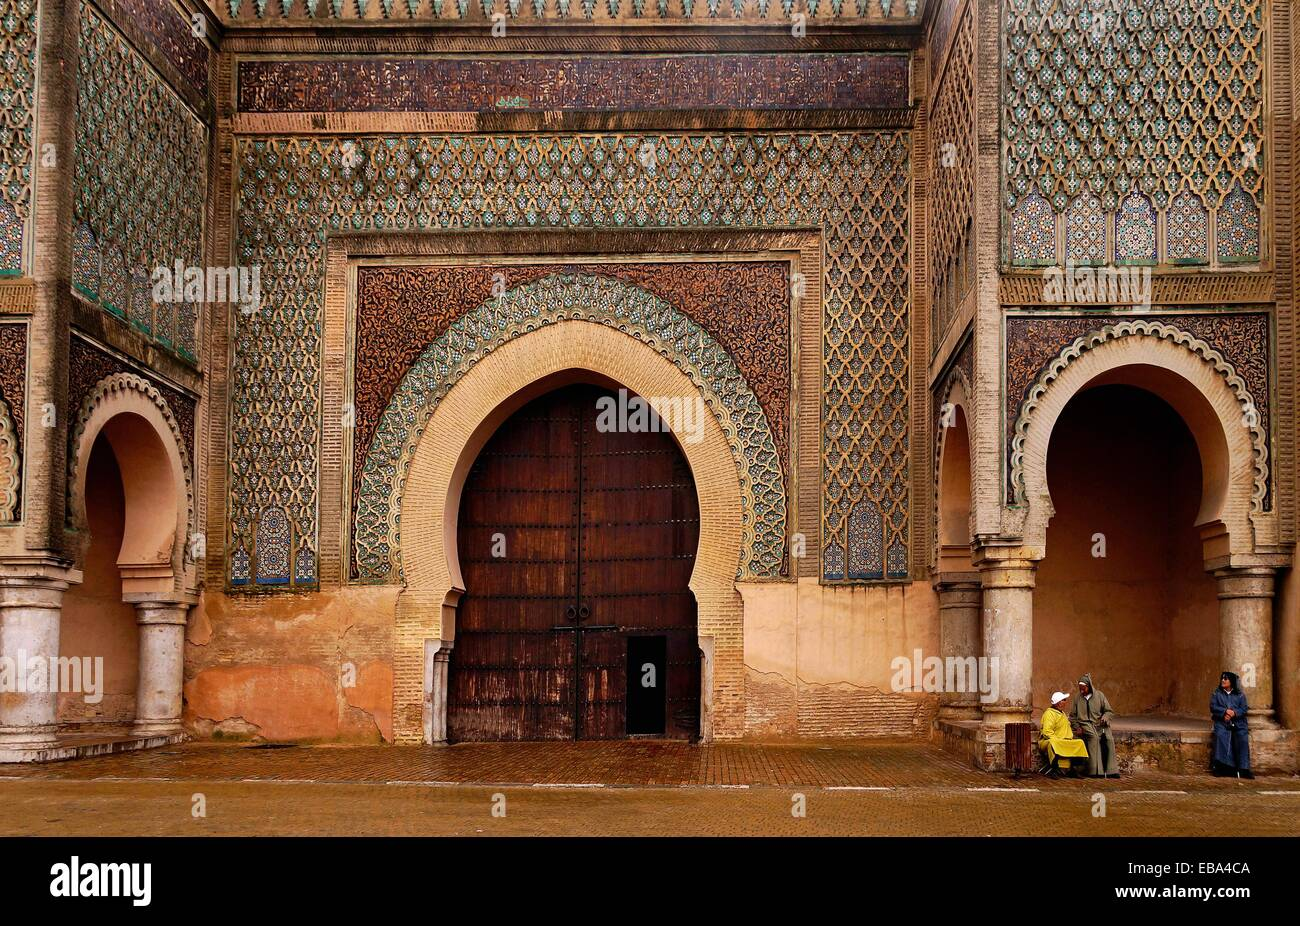 Morocco-Meknes- Bab Mansour gate, named after the architect, El-Mansour. It was completed 5 years after Moulay Ismail's Stock Photo